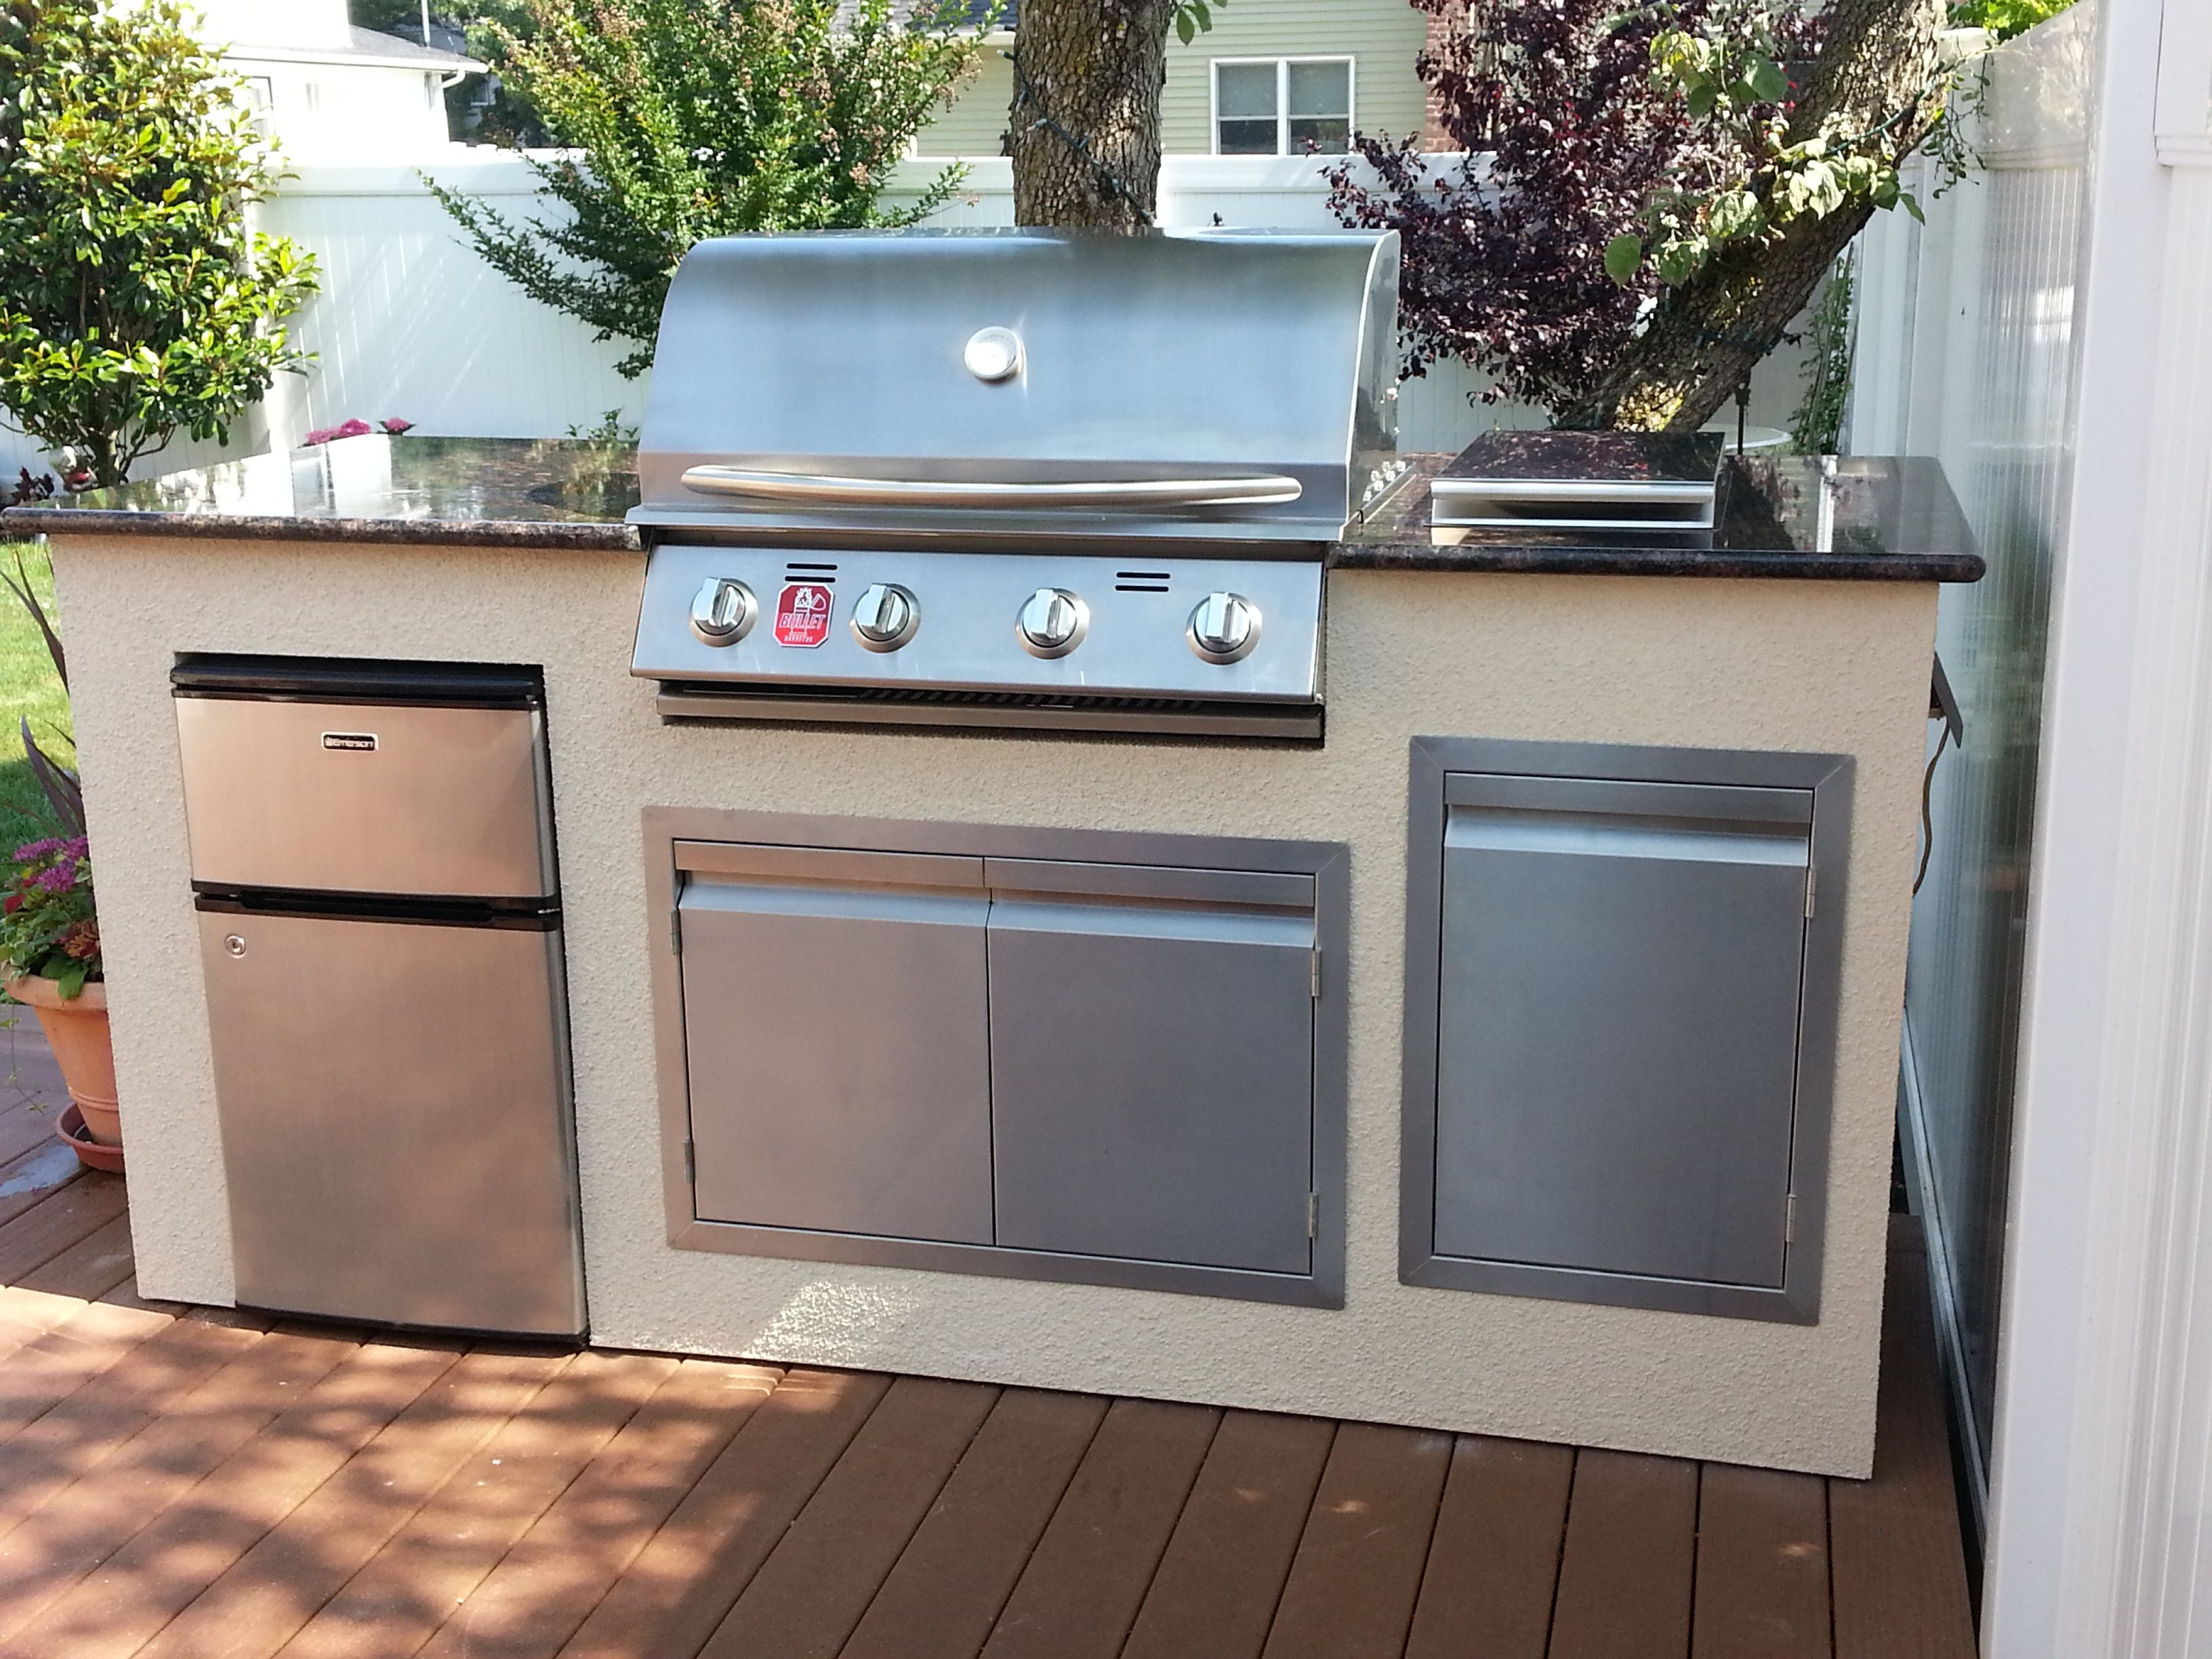 Arthur Giordano Built This Beautiful Bbq Island On A Wooden Deck Bbq Coach Frames Are Lighte Outdoor Kitchen Appliances Outdoor Kitchen Outdoor Kitchen Design